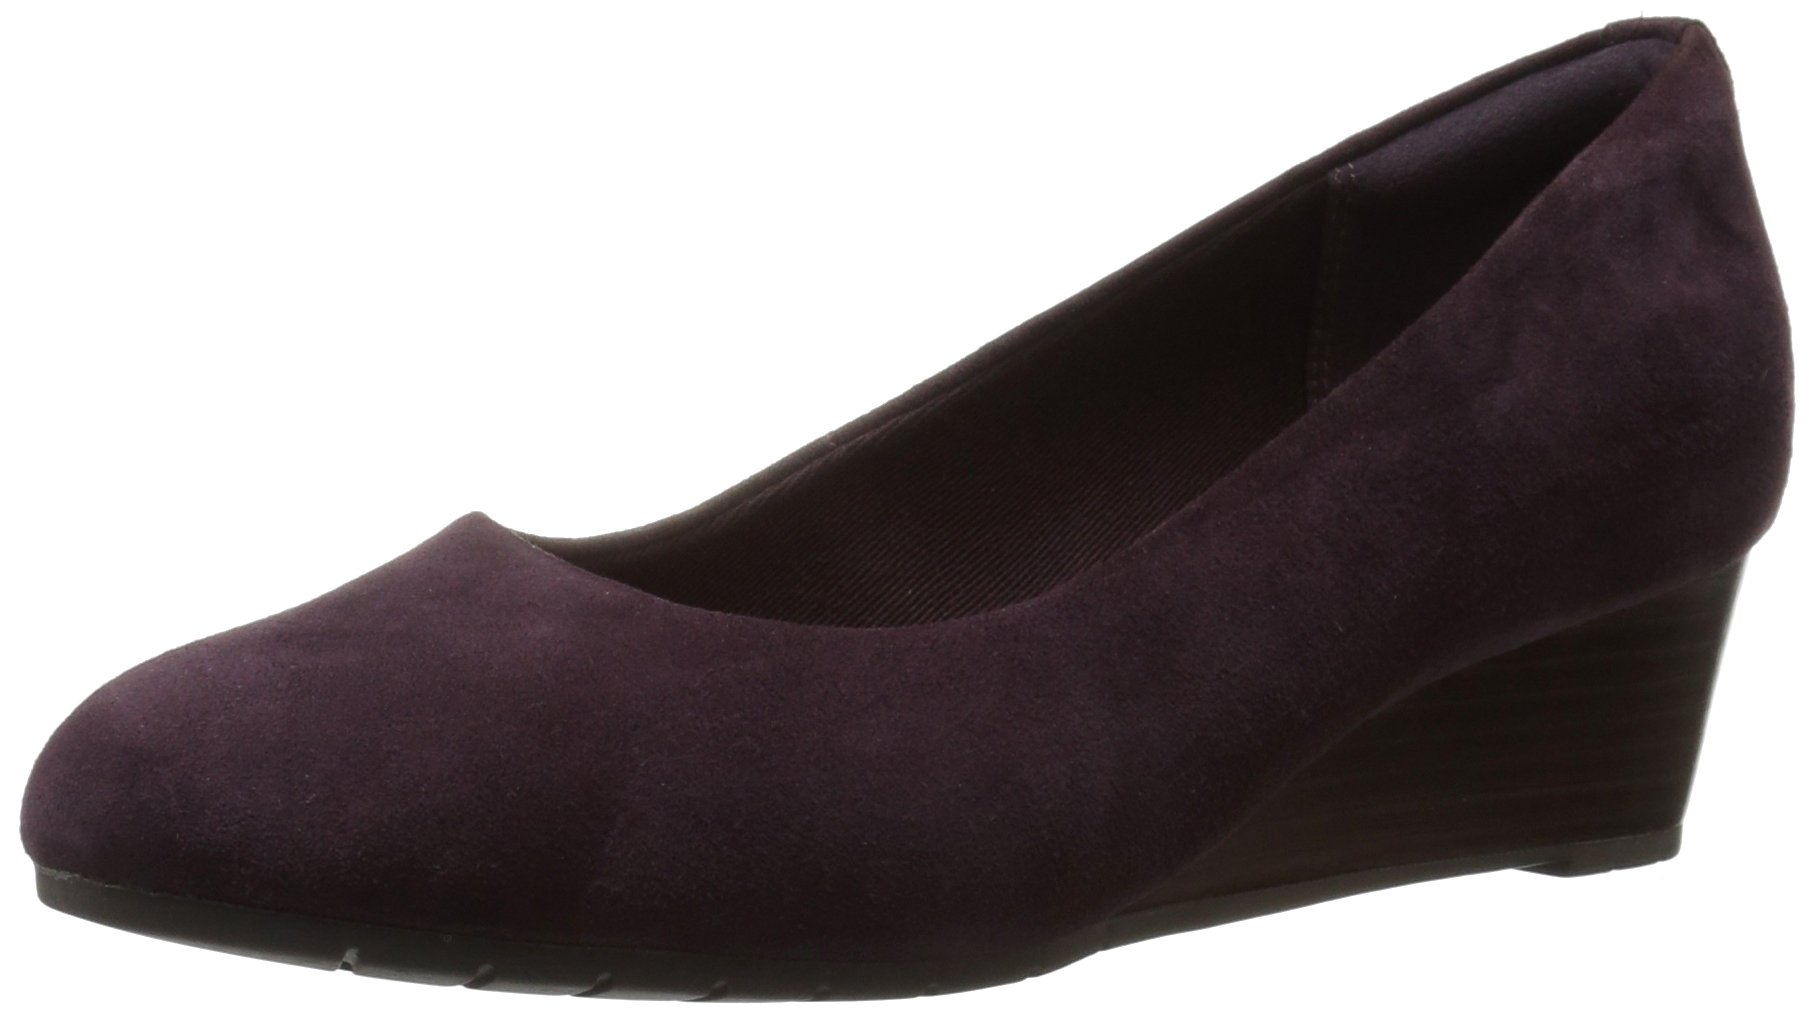 CLARKS Women's Vendra Bloom Wedge Pump, Vendra Bloom Aubergine Suede, 6.5 W US